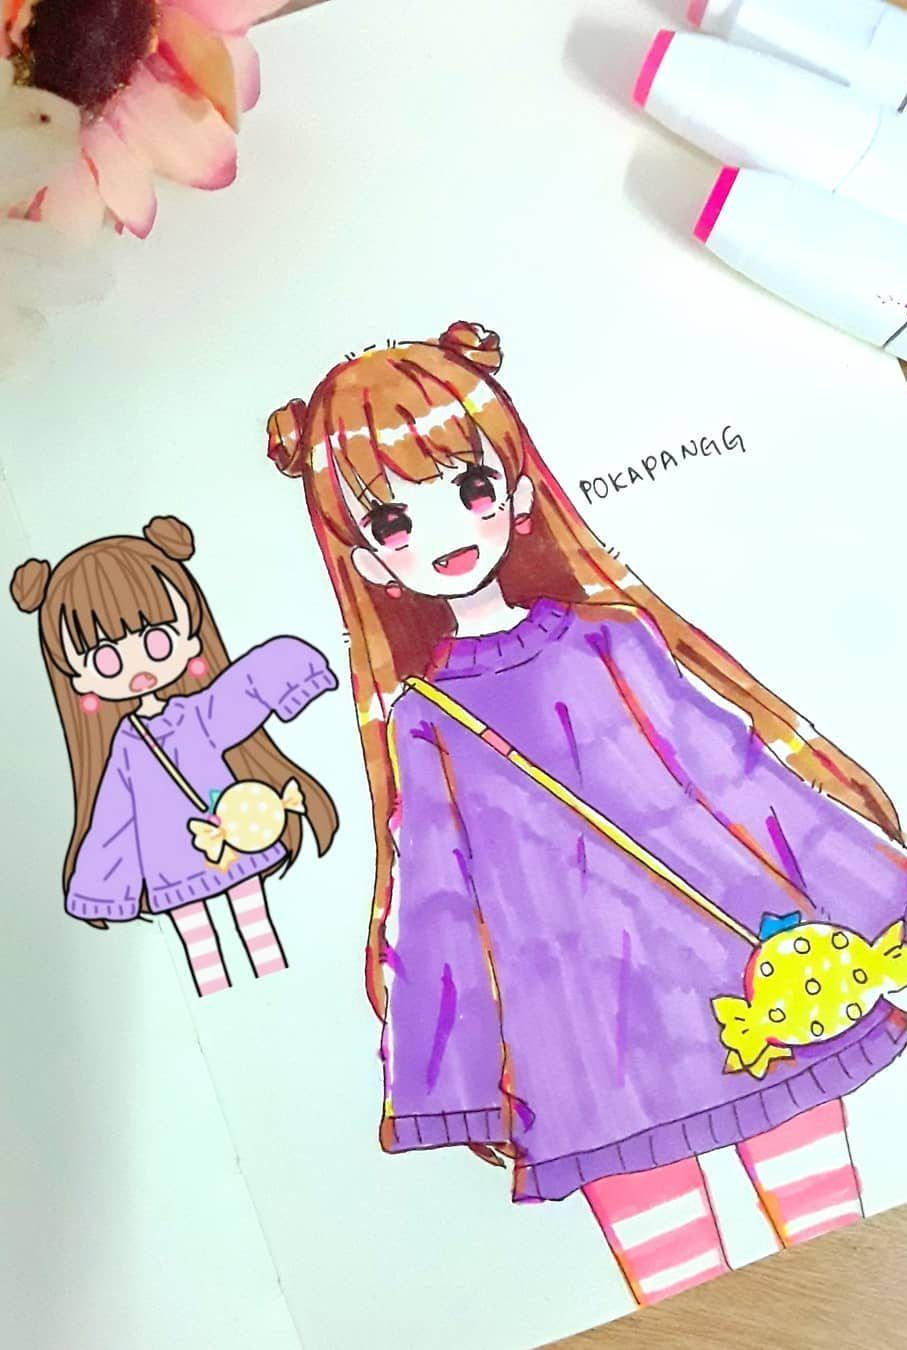 Best Drawing Manga Style On The Anime Manga Art Style Page 5 Dễ Thương